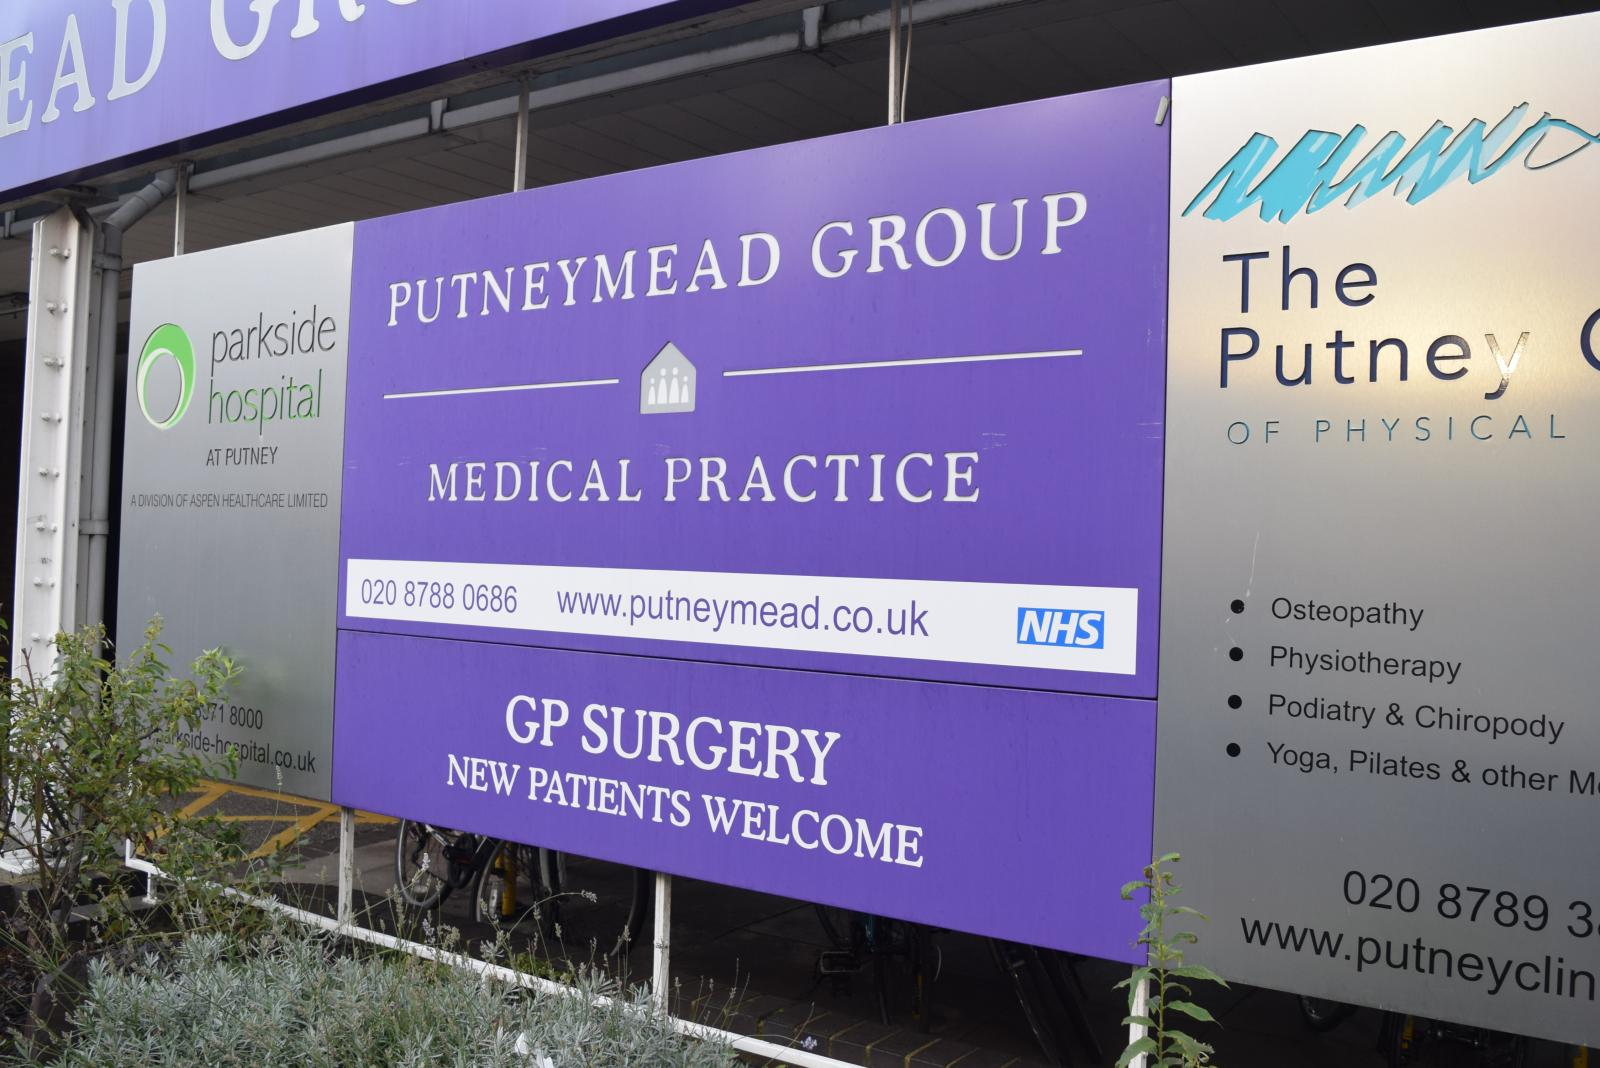 putneymead group medical practice